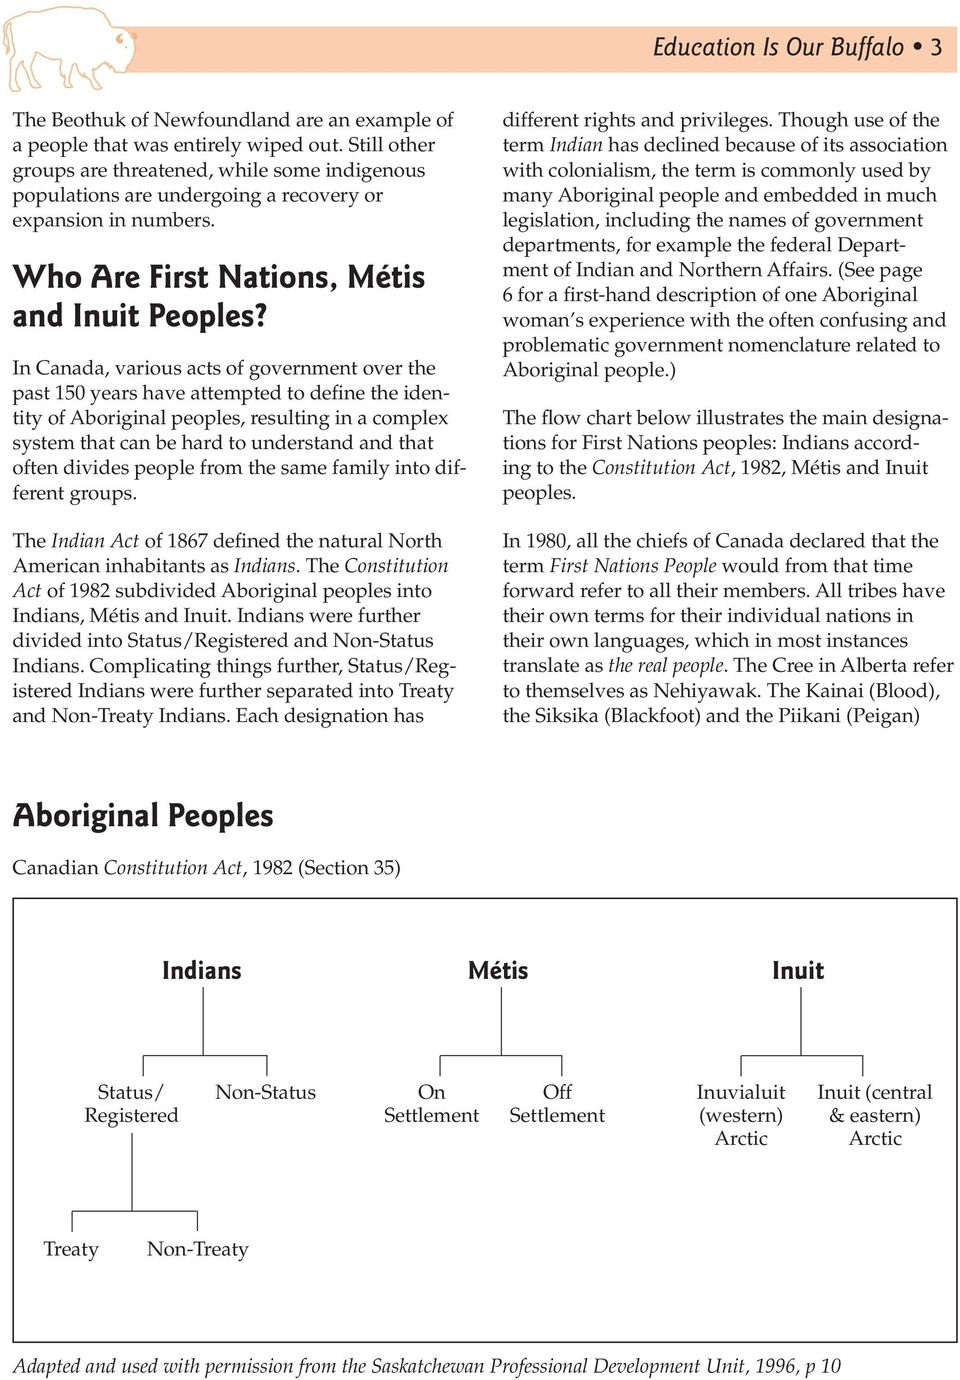 In Canada, various acts of government over the past 150 years have attempted to define the identity of Aboriginal peoples, resulting in a complex system that can be hard to understand and that often